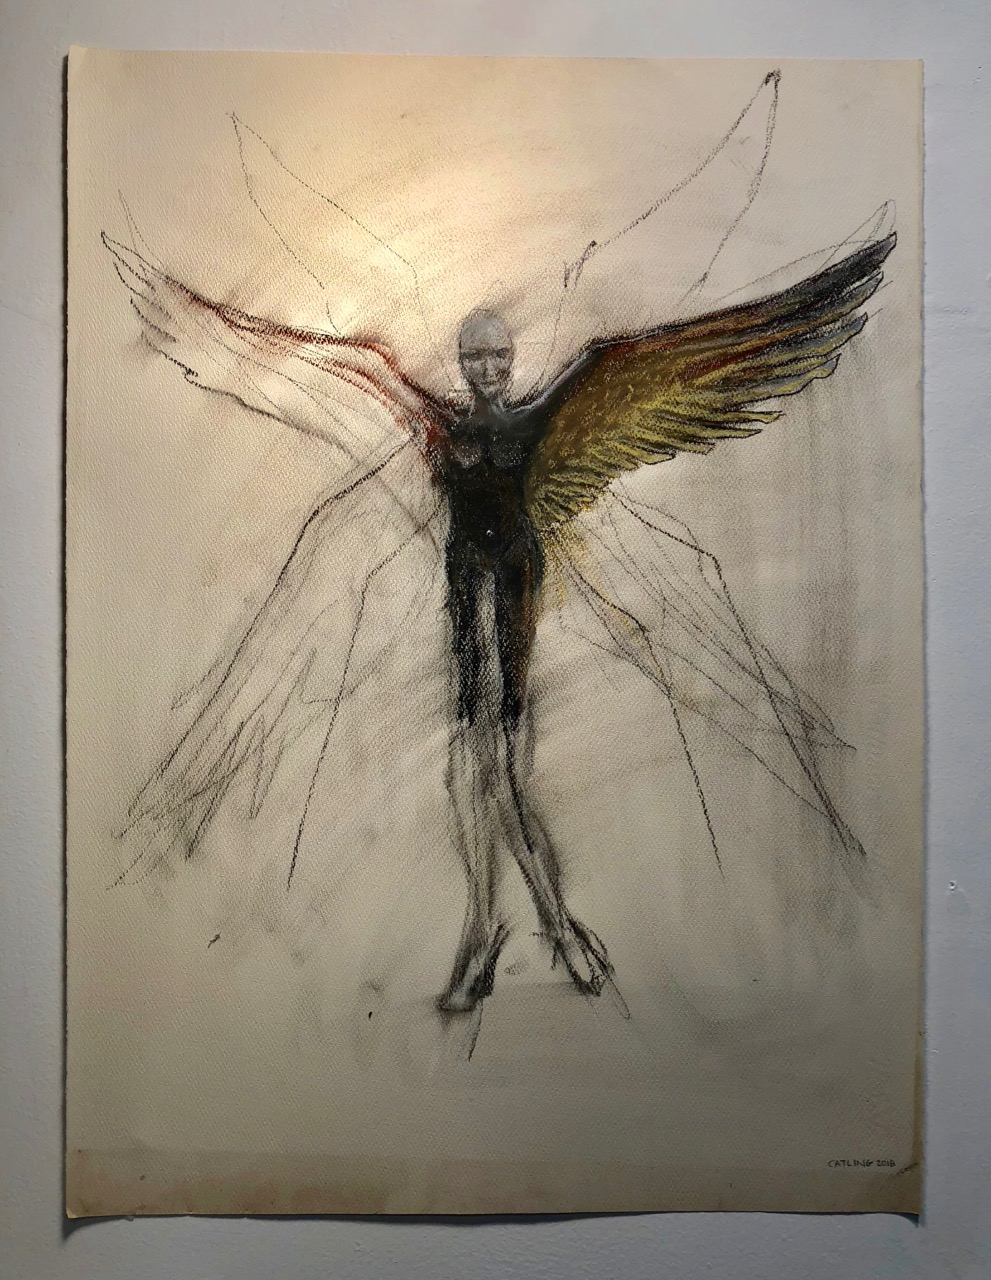 Kairos drawing   2018  Graphite, charcoal and chalk on paper  30 x 22""